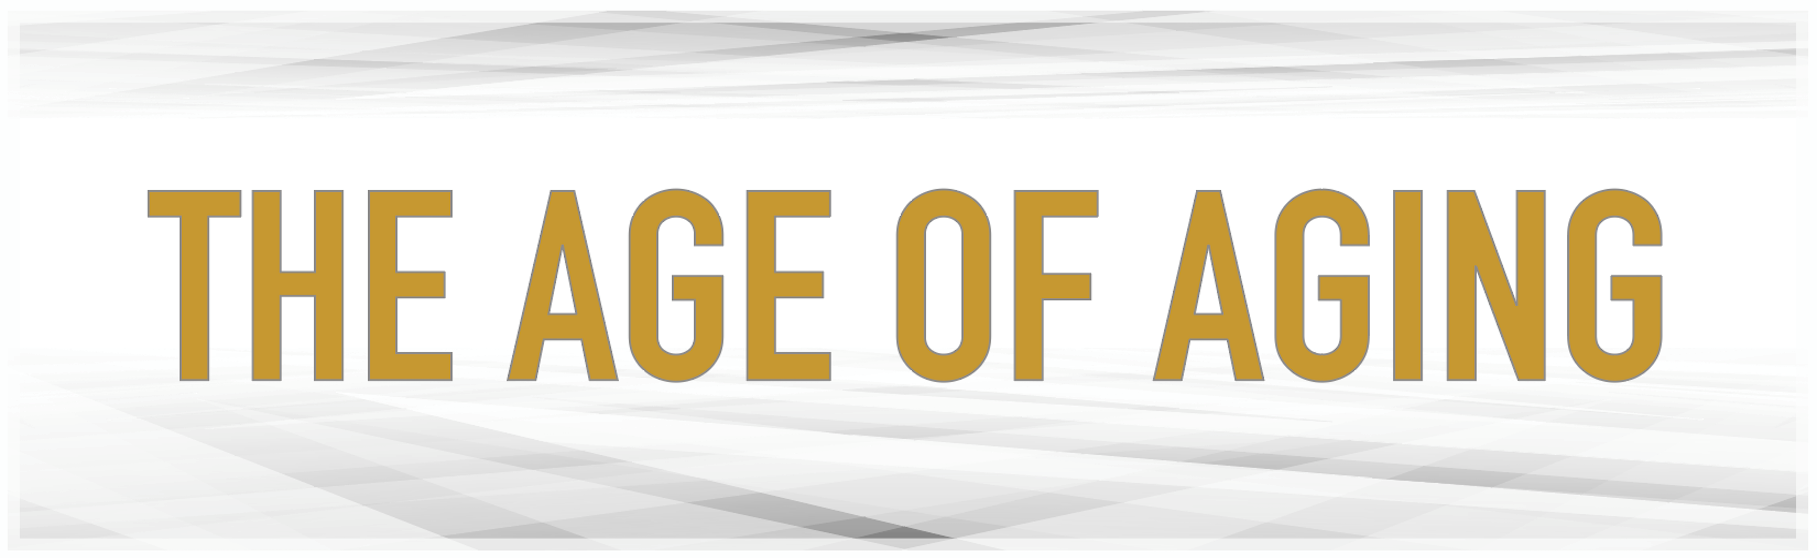 The Age of Aging logo